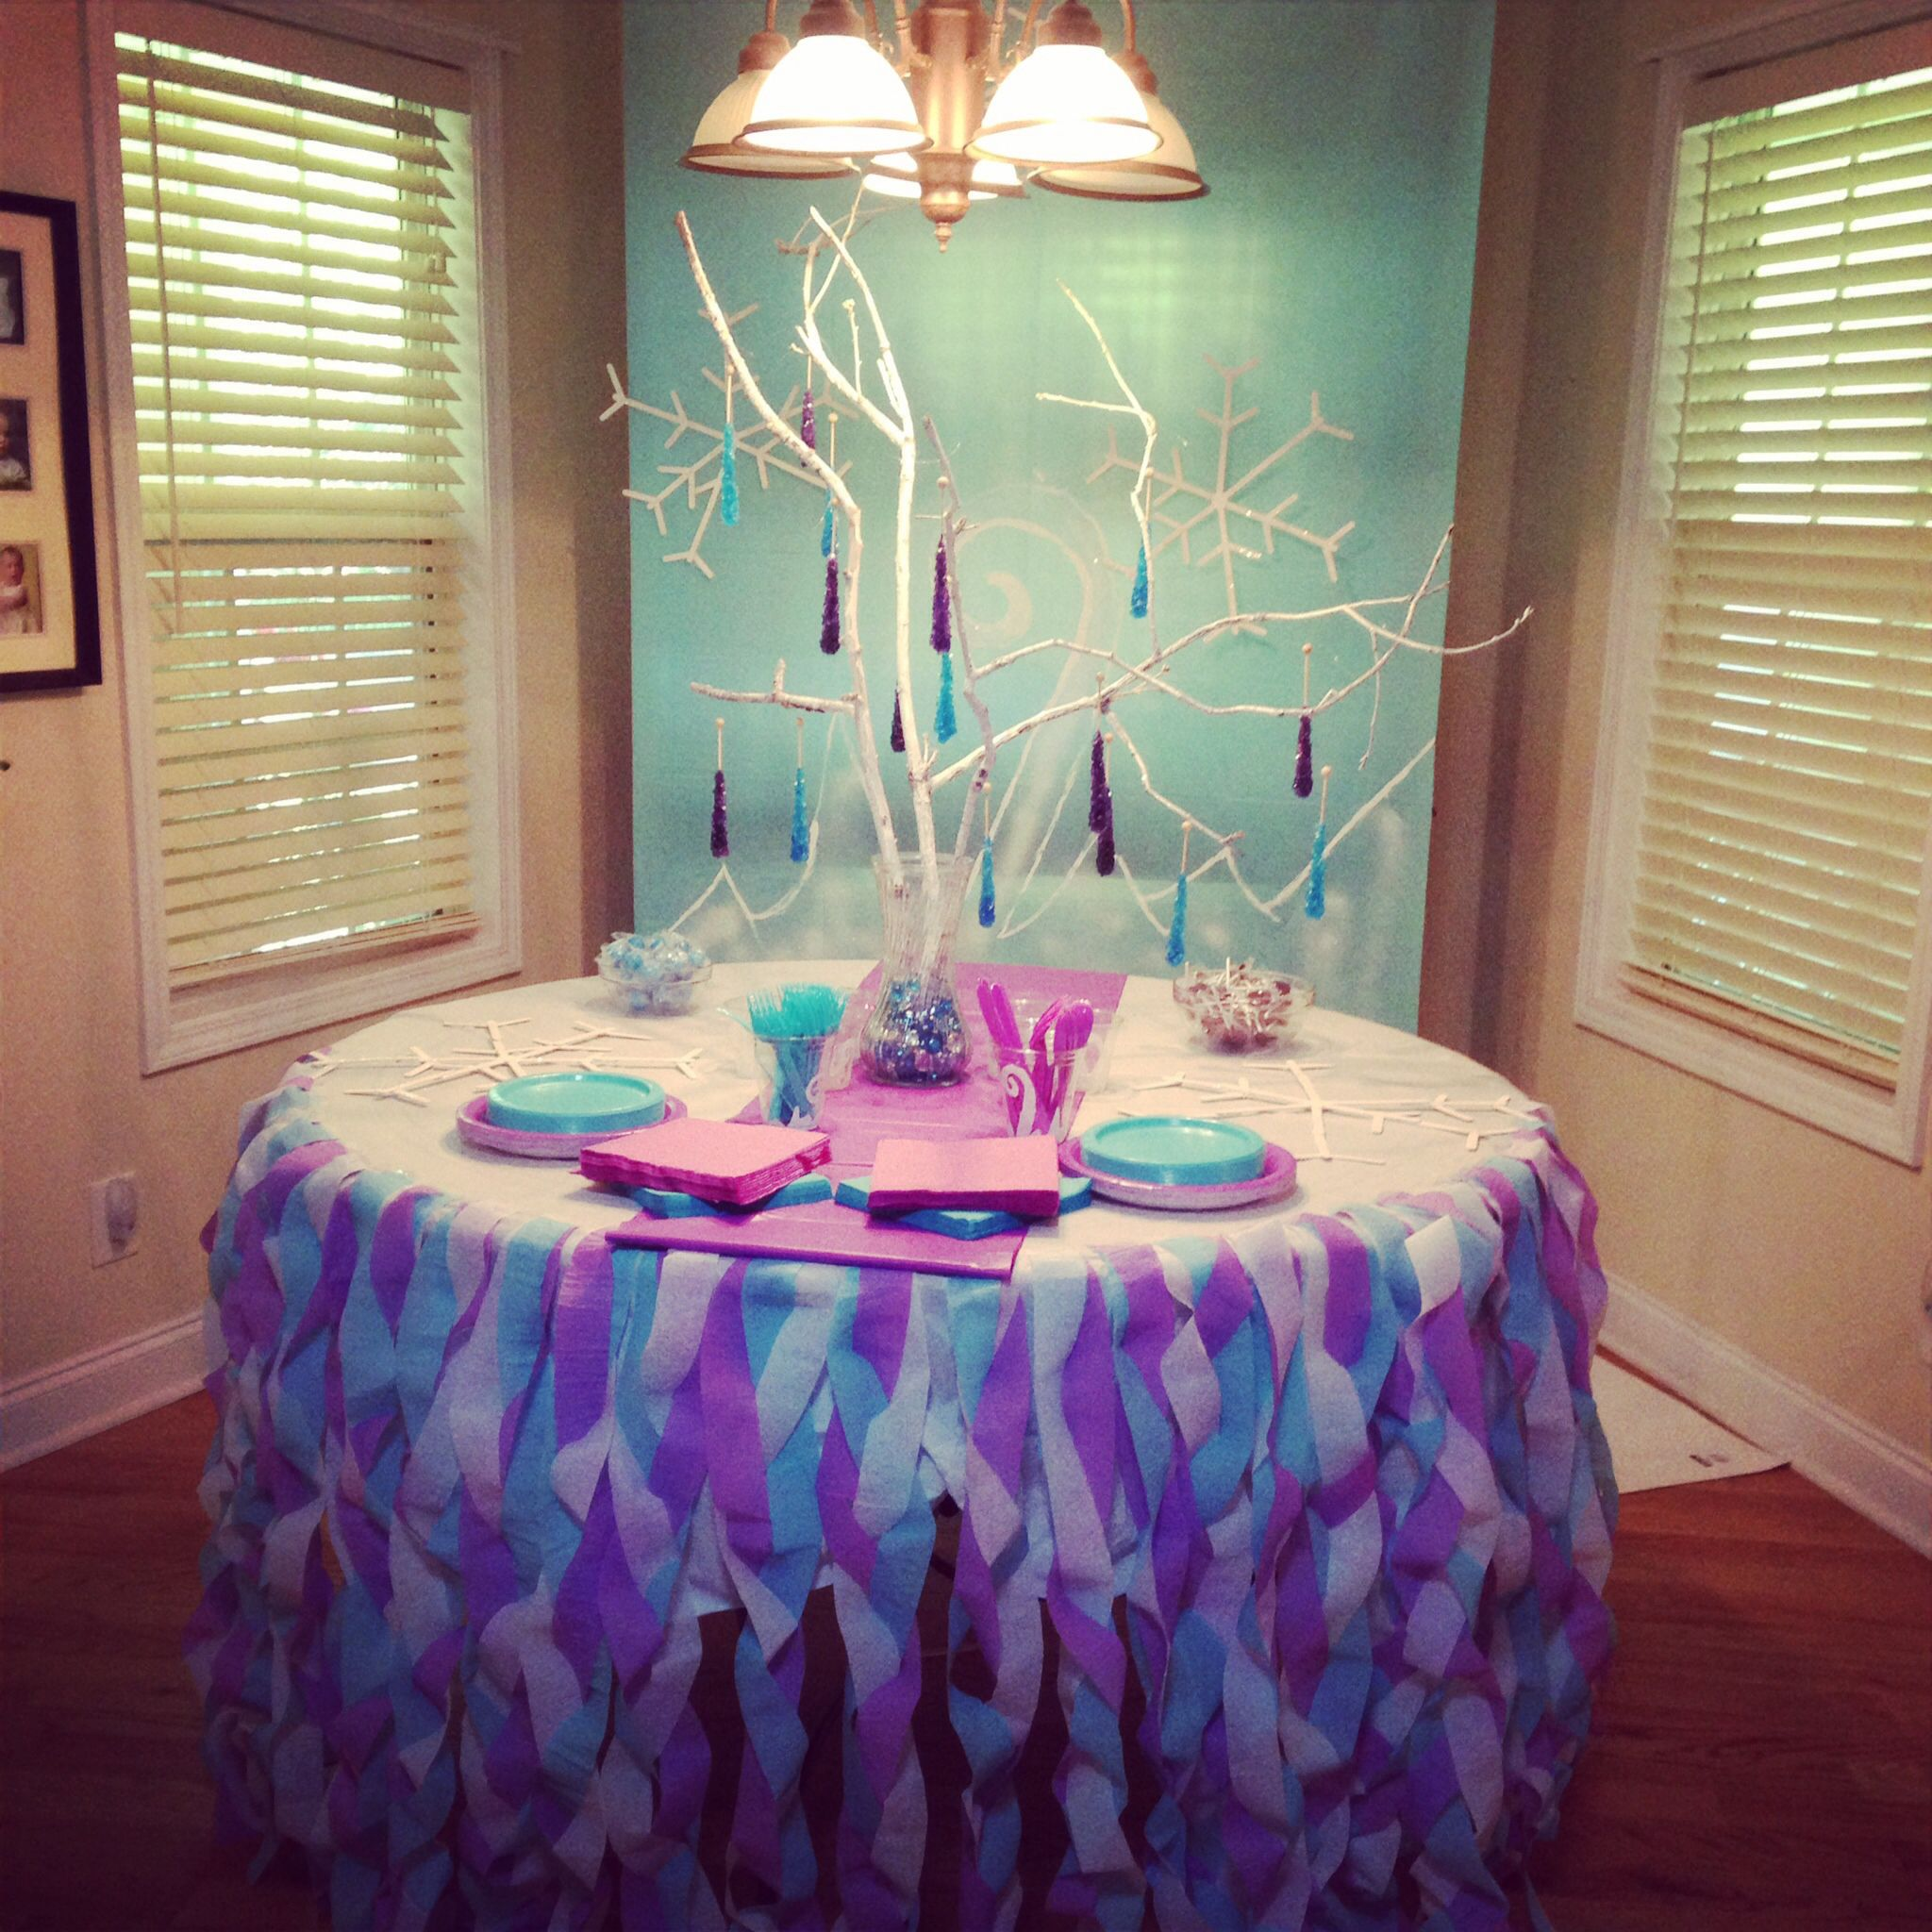 Frozen decorations 7th birthday party ideas pinterest for Decoration ideas 7th birthday party